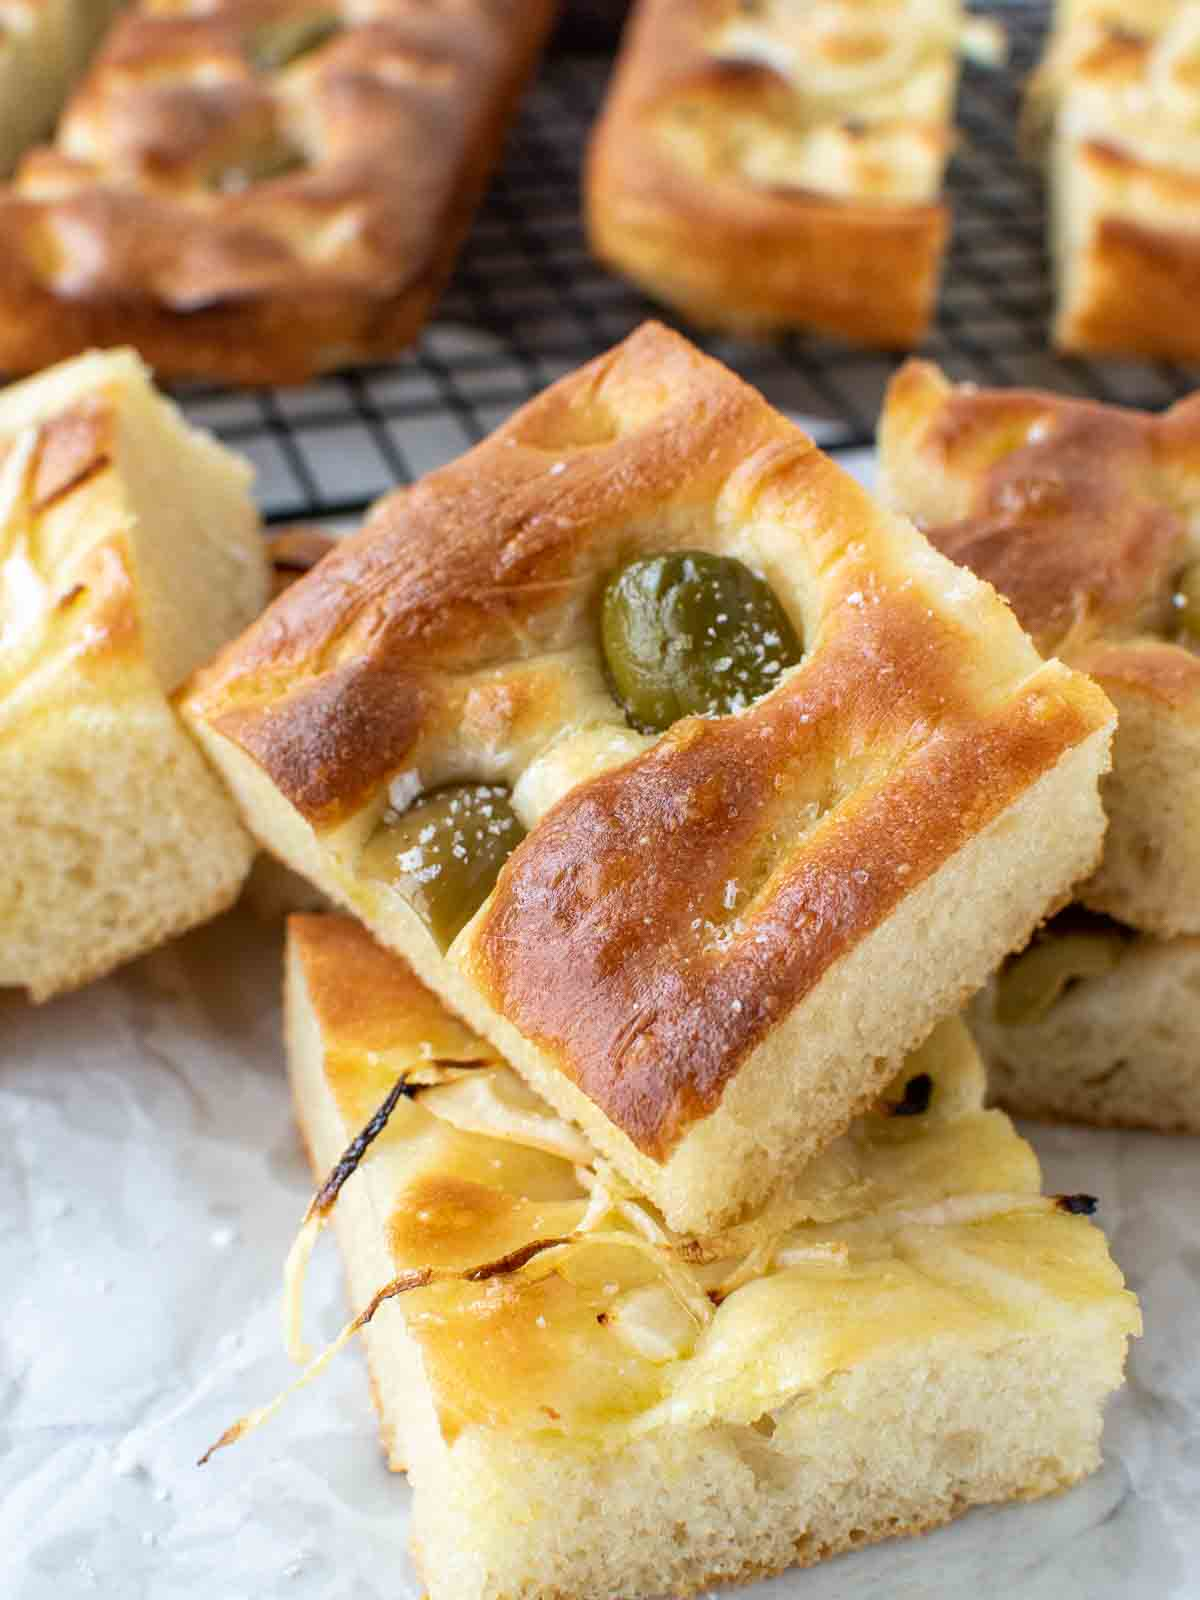 close up of focaccia bread with green olives on top and sliced onions on other pieces with more focaccia in the background